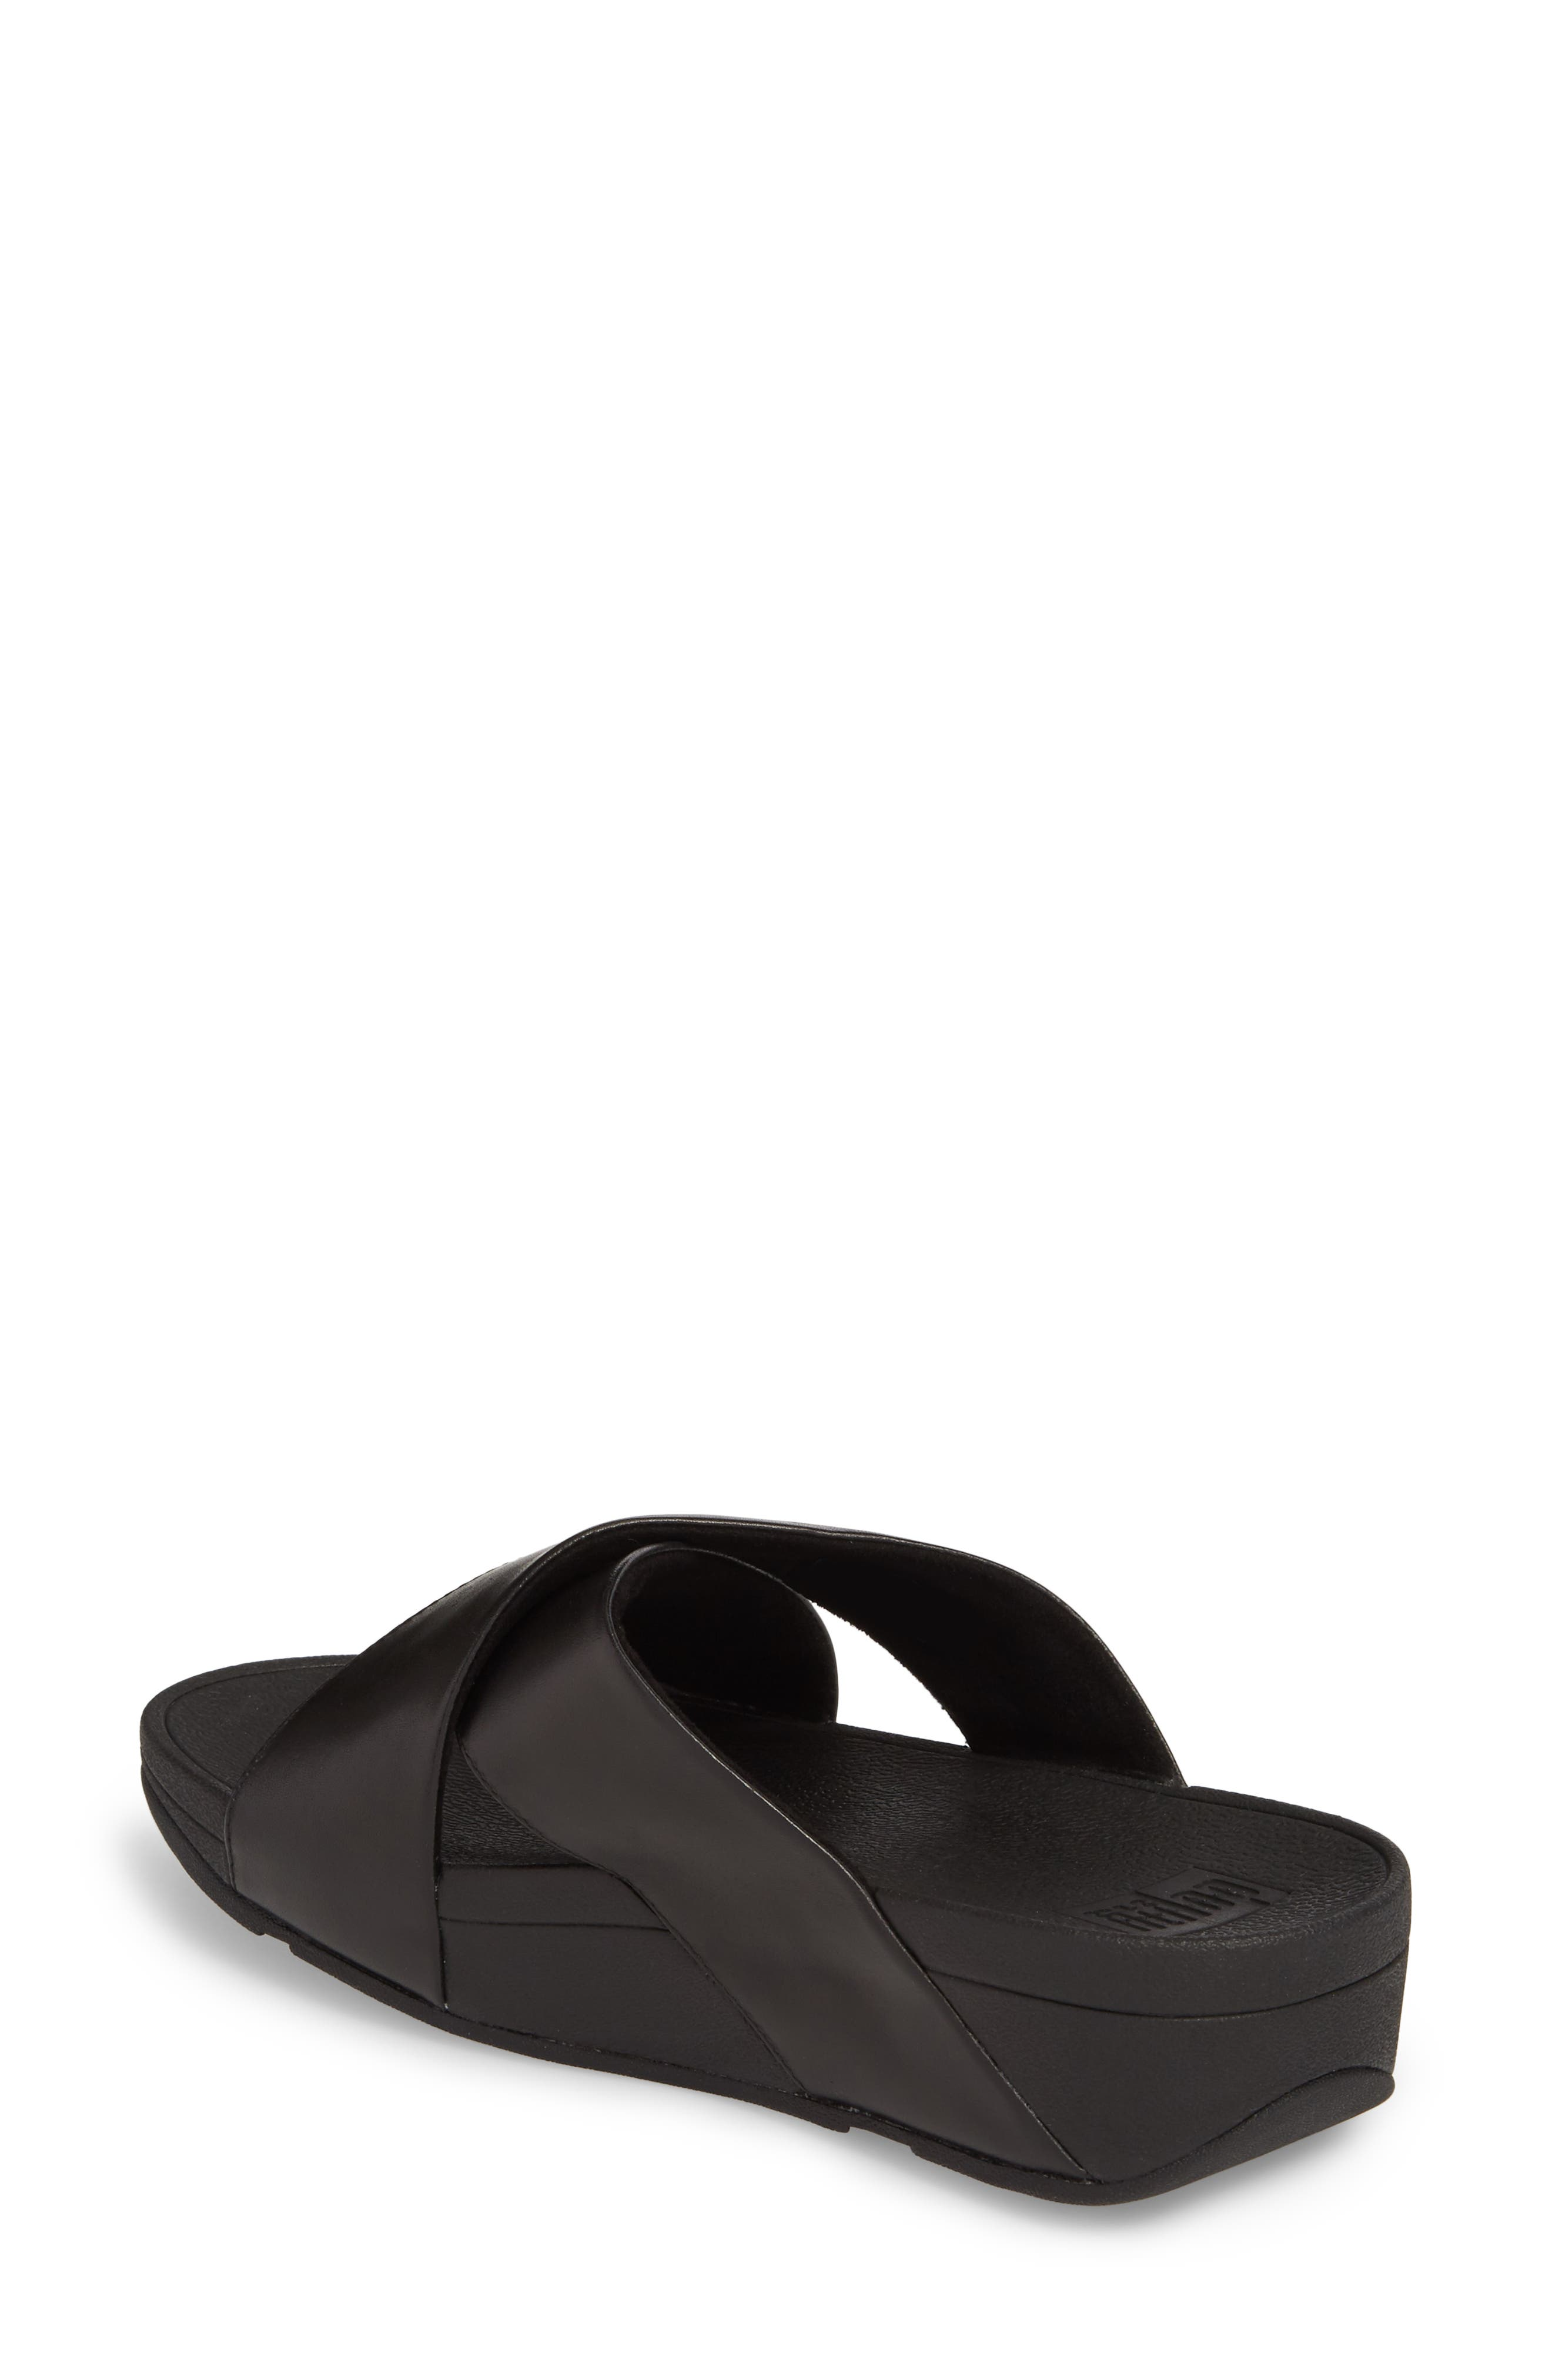 Lulu Cross Slide Sandal,                             Alternate thumbnail 2, color,                             001